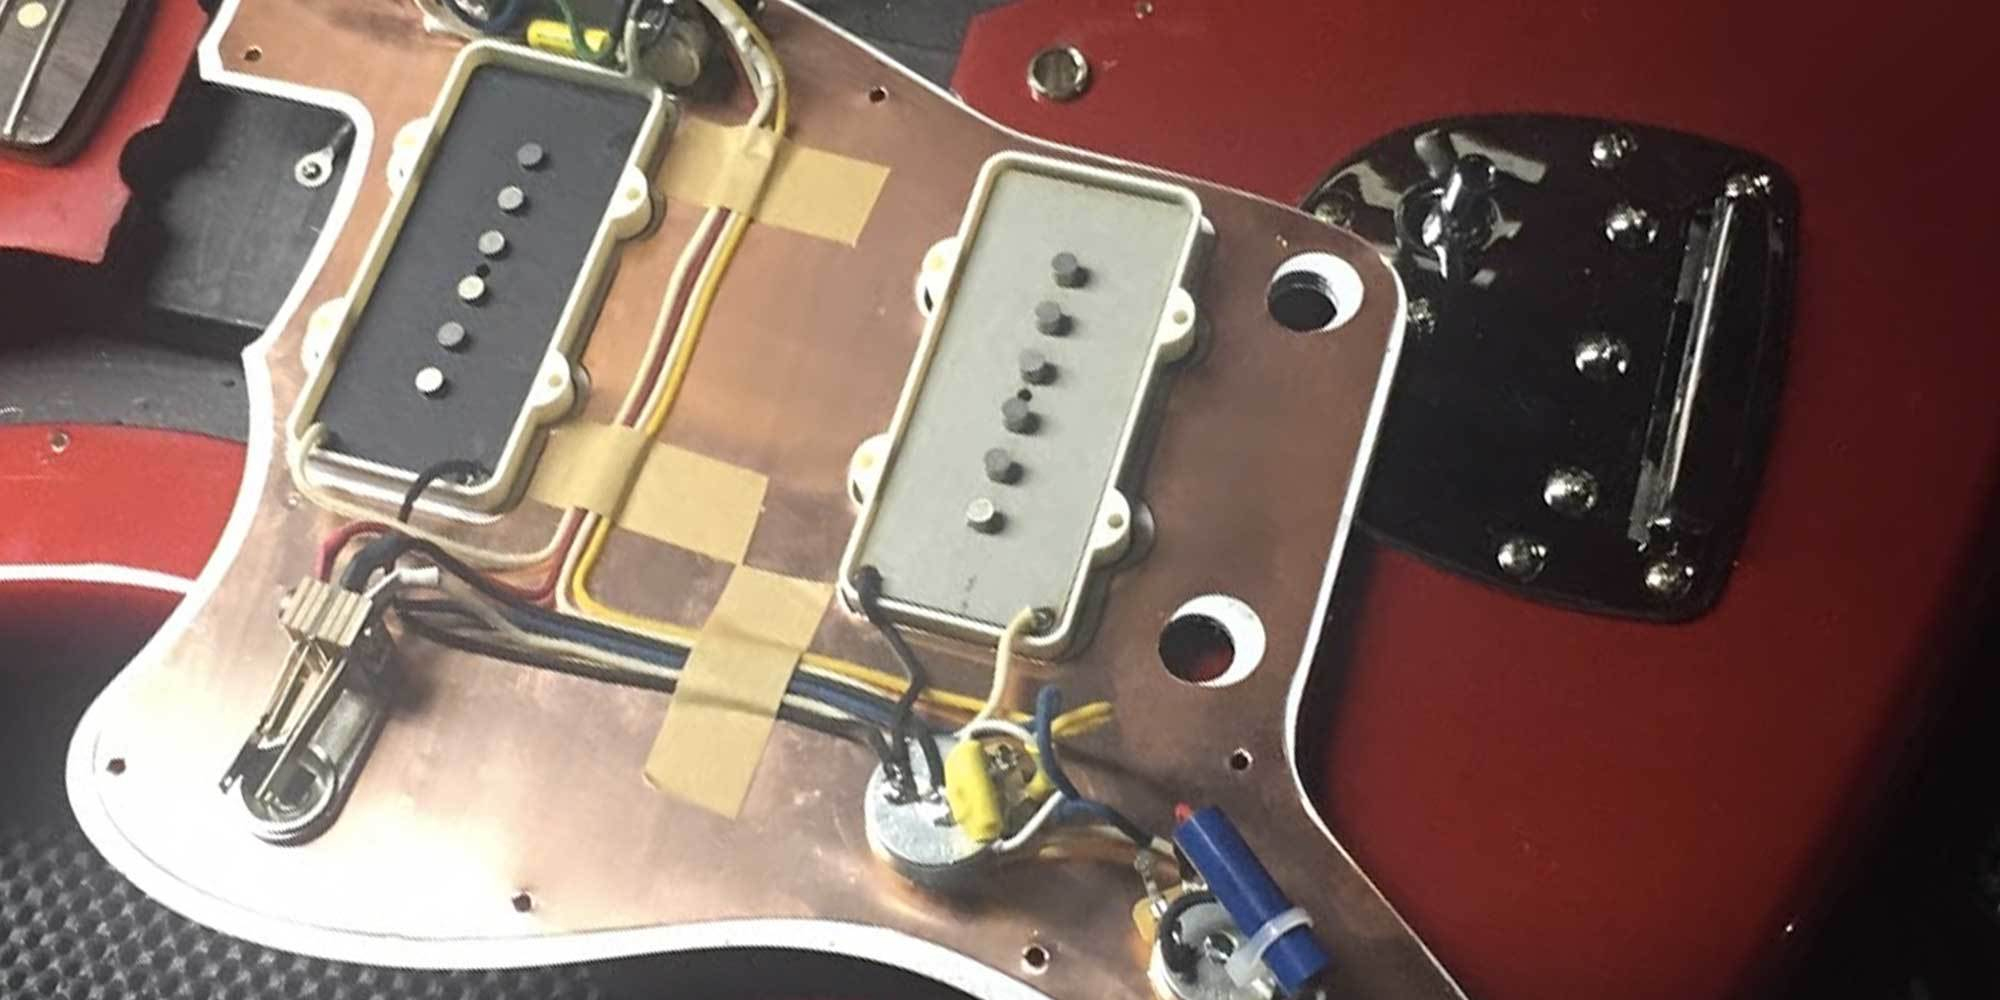 Upgrading Jazzmaster Electronics: Unleash The Potential | Reverb News - Jazzmaster Wiring Diagram